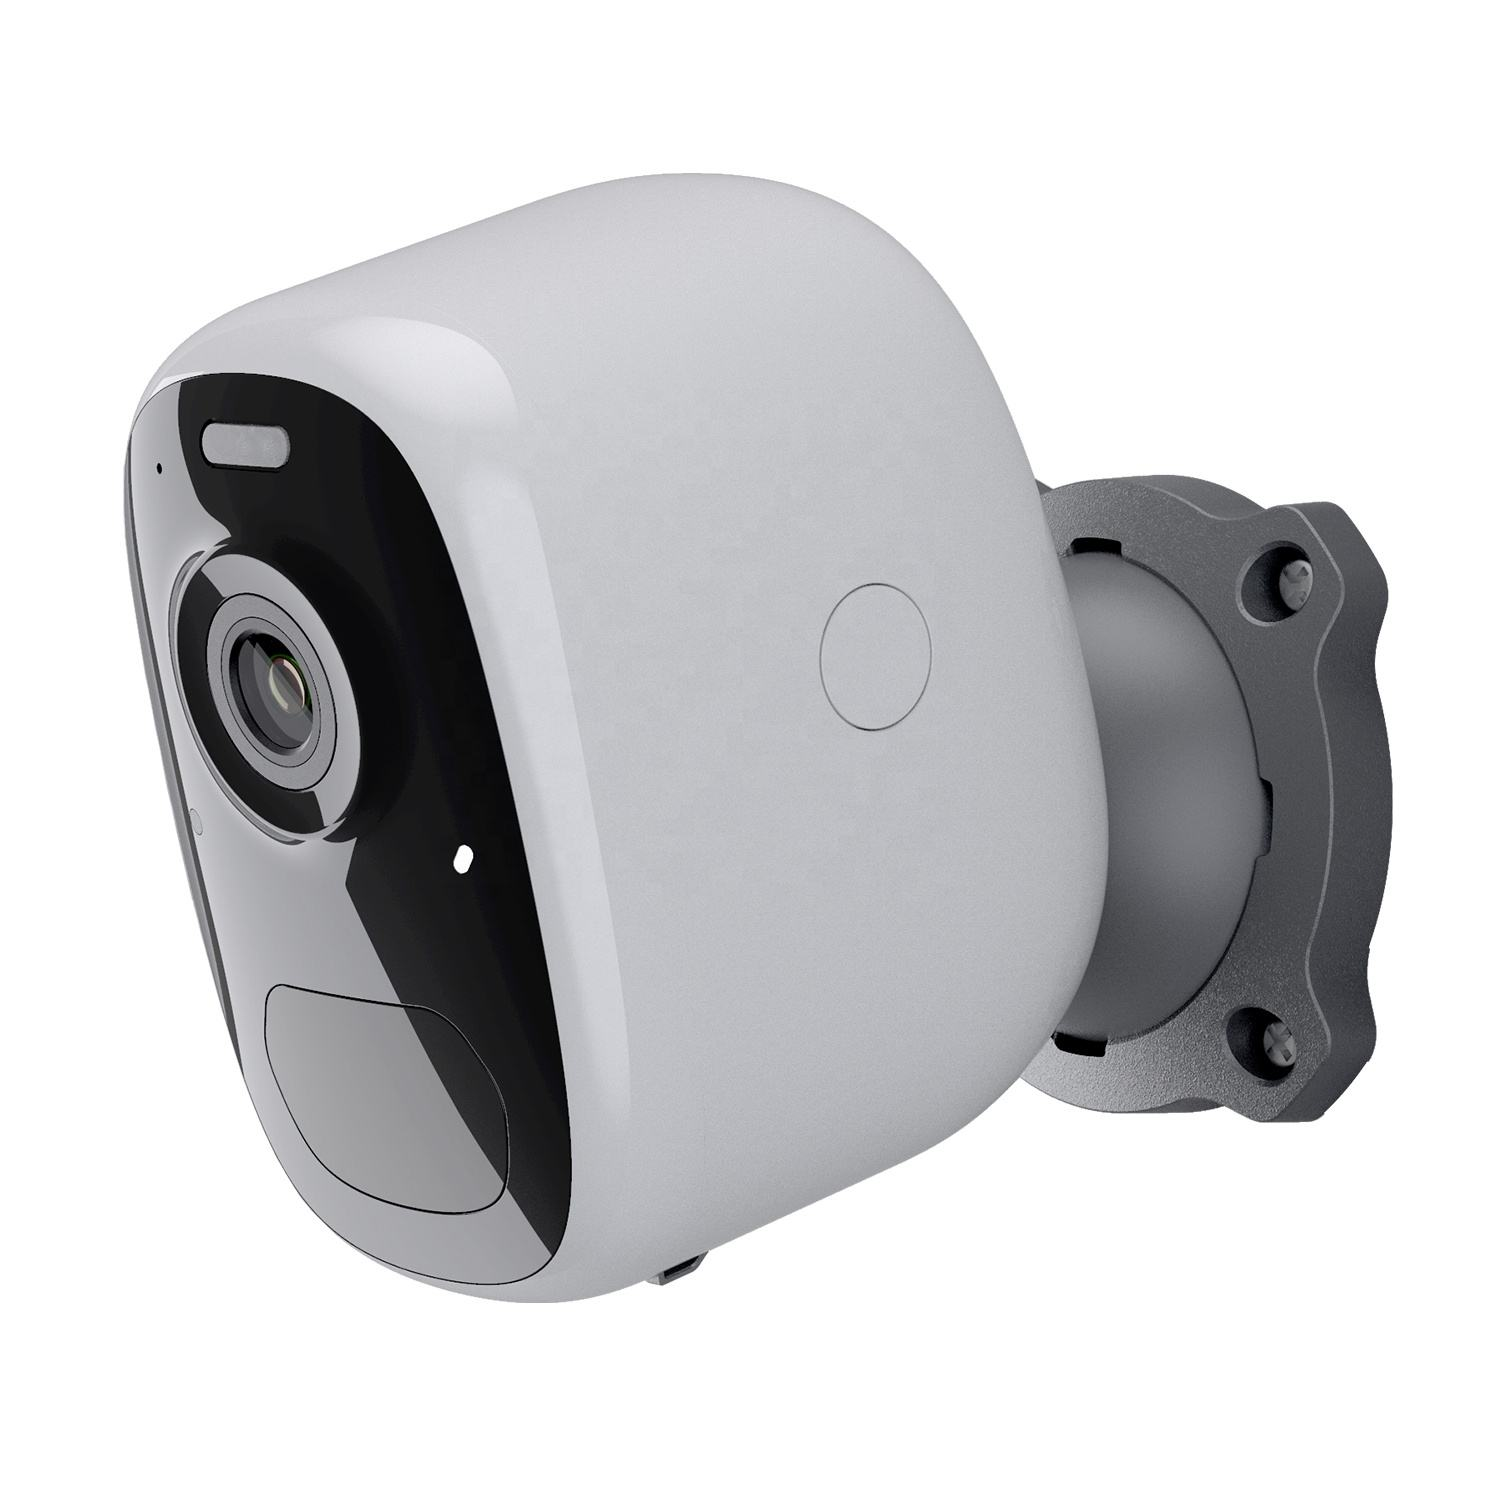 AI Human detection and 24 hours color vision mini size PIR 1080P wifi ip battery camera ,support 1 year standby time